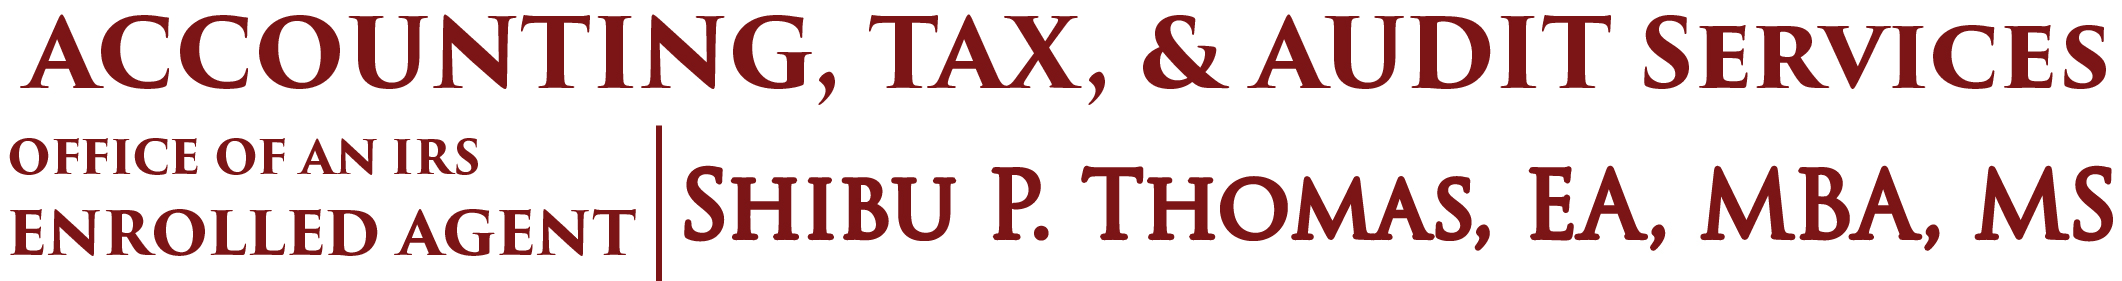 Staten Island, NY Accounting Firm | Home Page | Accounting, Tax, & Audit Services Shibu P. Thomas, EA, MBA, MS